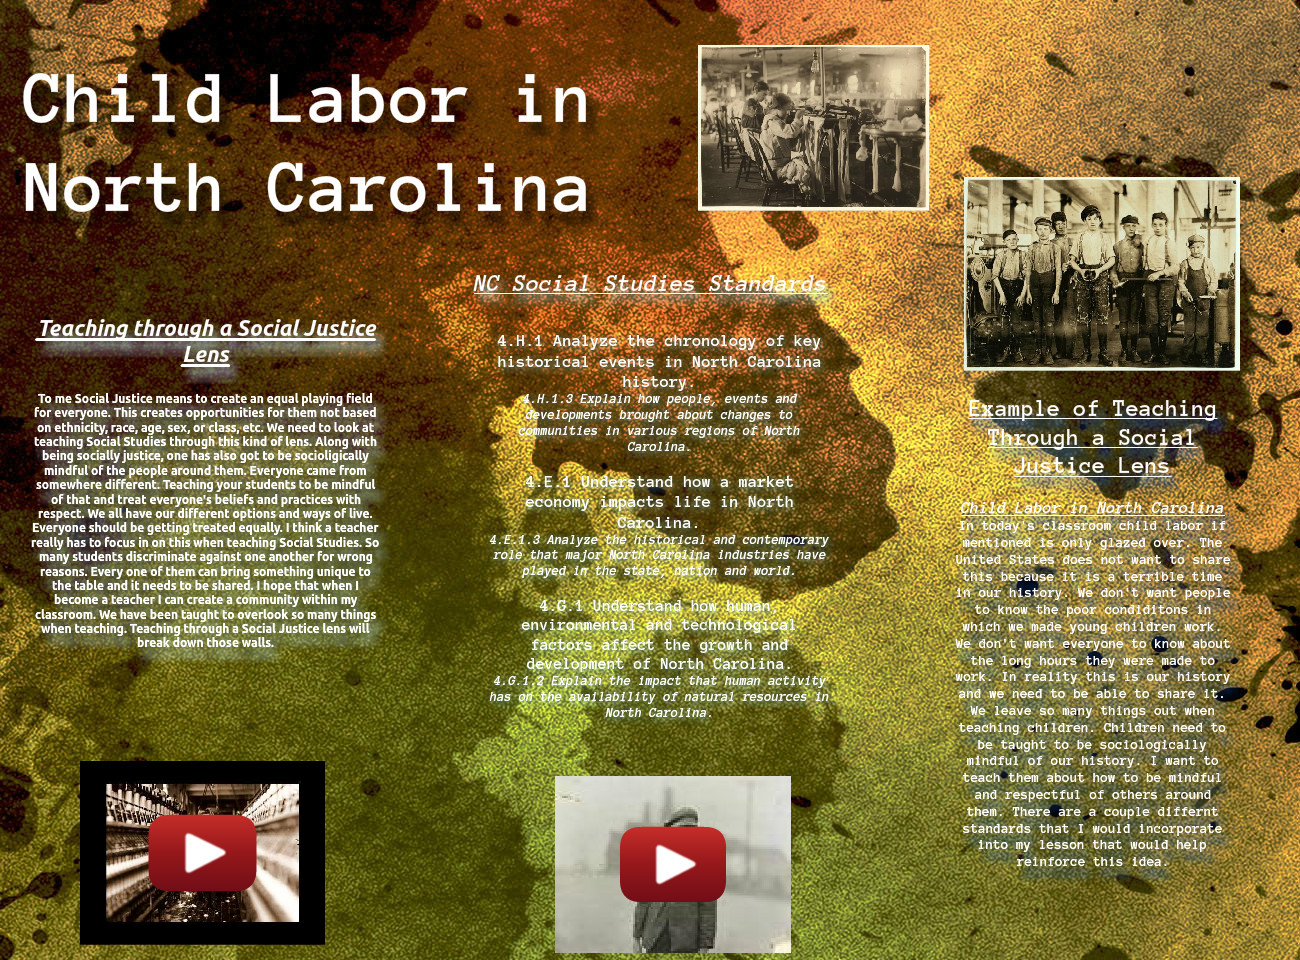 Child Labor in North Carolina